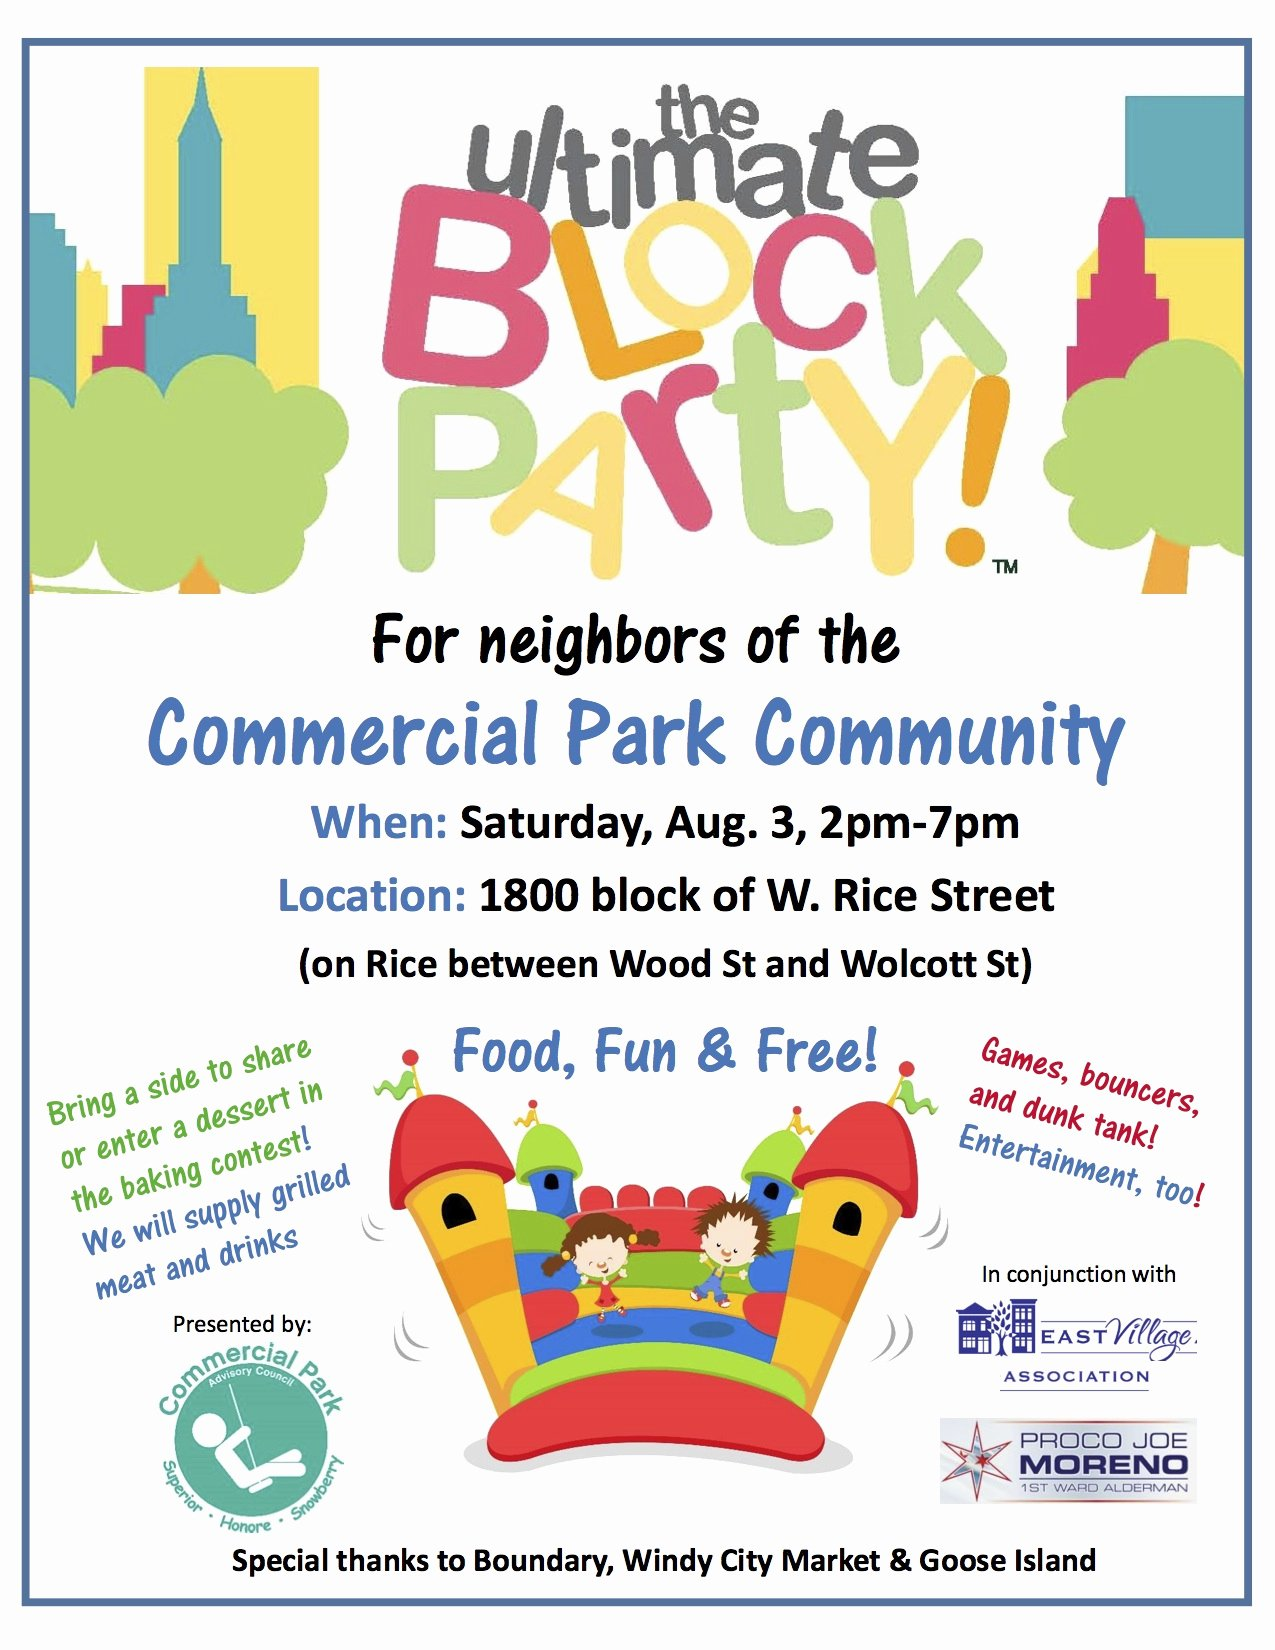 Neighborhood Block Party Flyer Template Awesome Mercial Park Munity Block Party is Back – Saturday